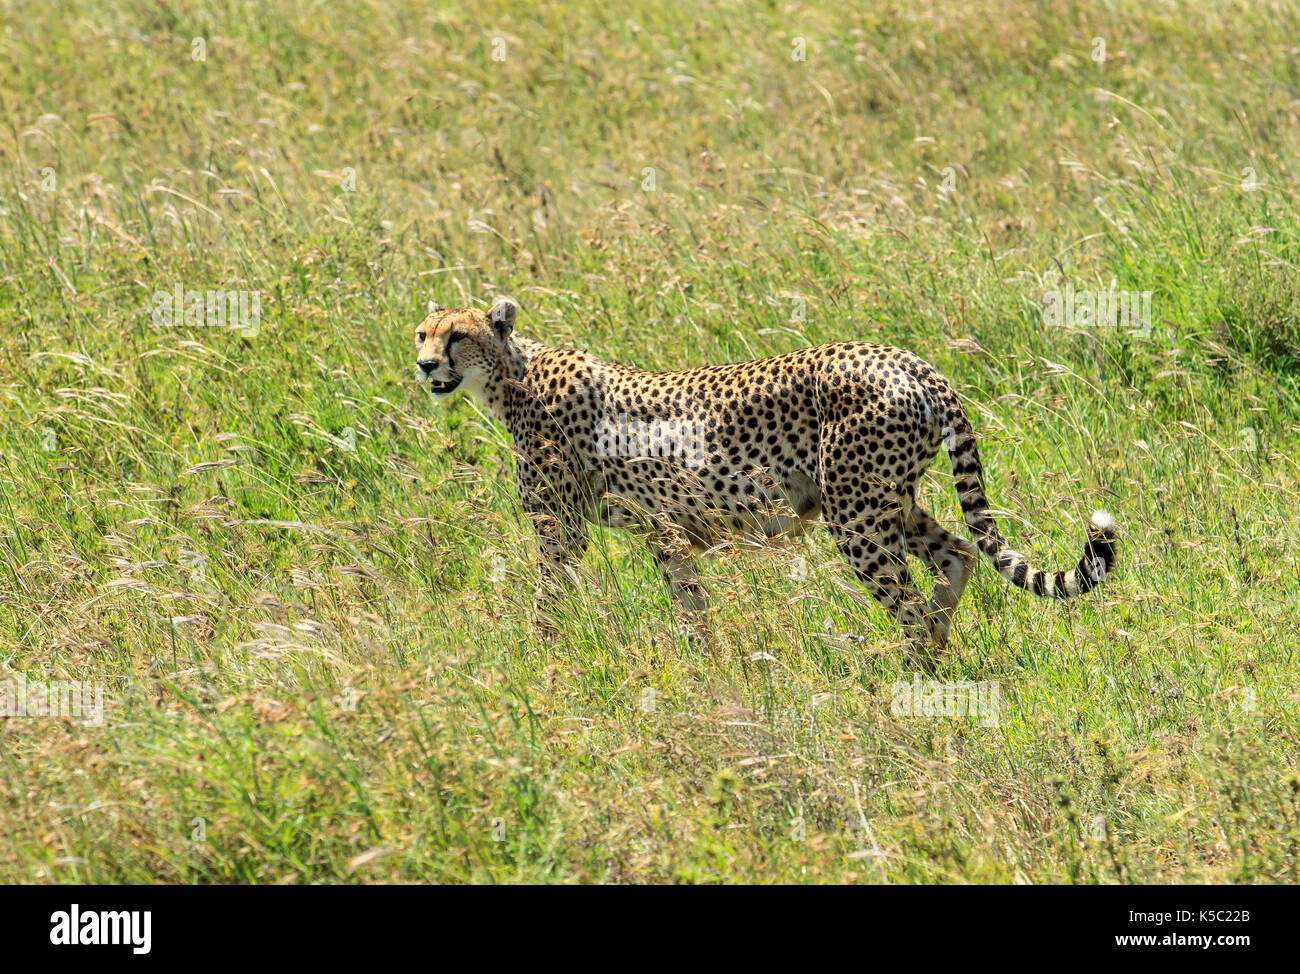 Cheetah on the prowl in the Serengeti - Stock Image